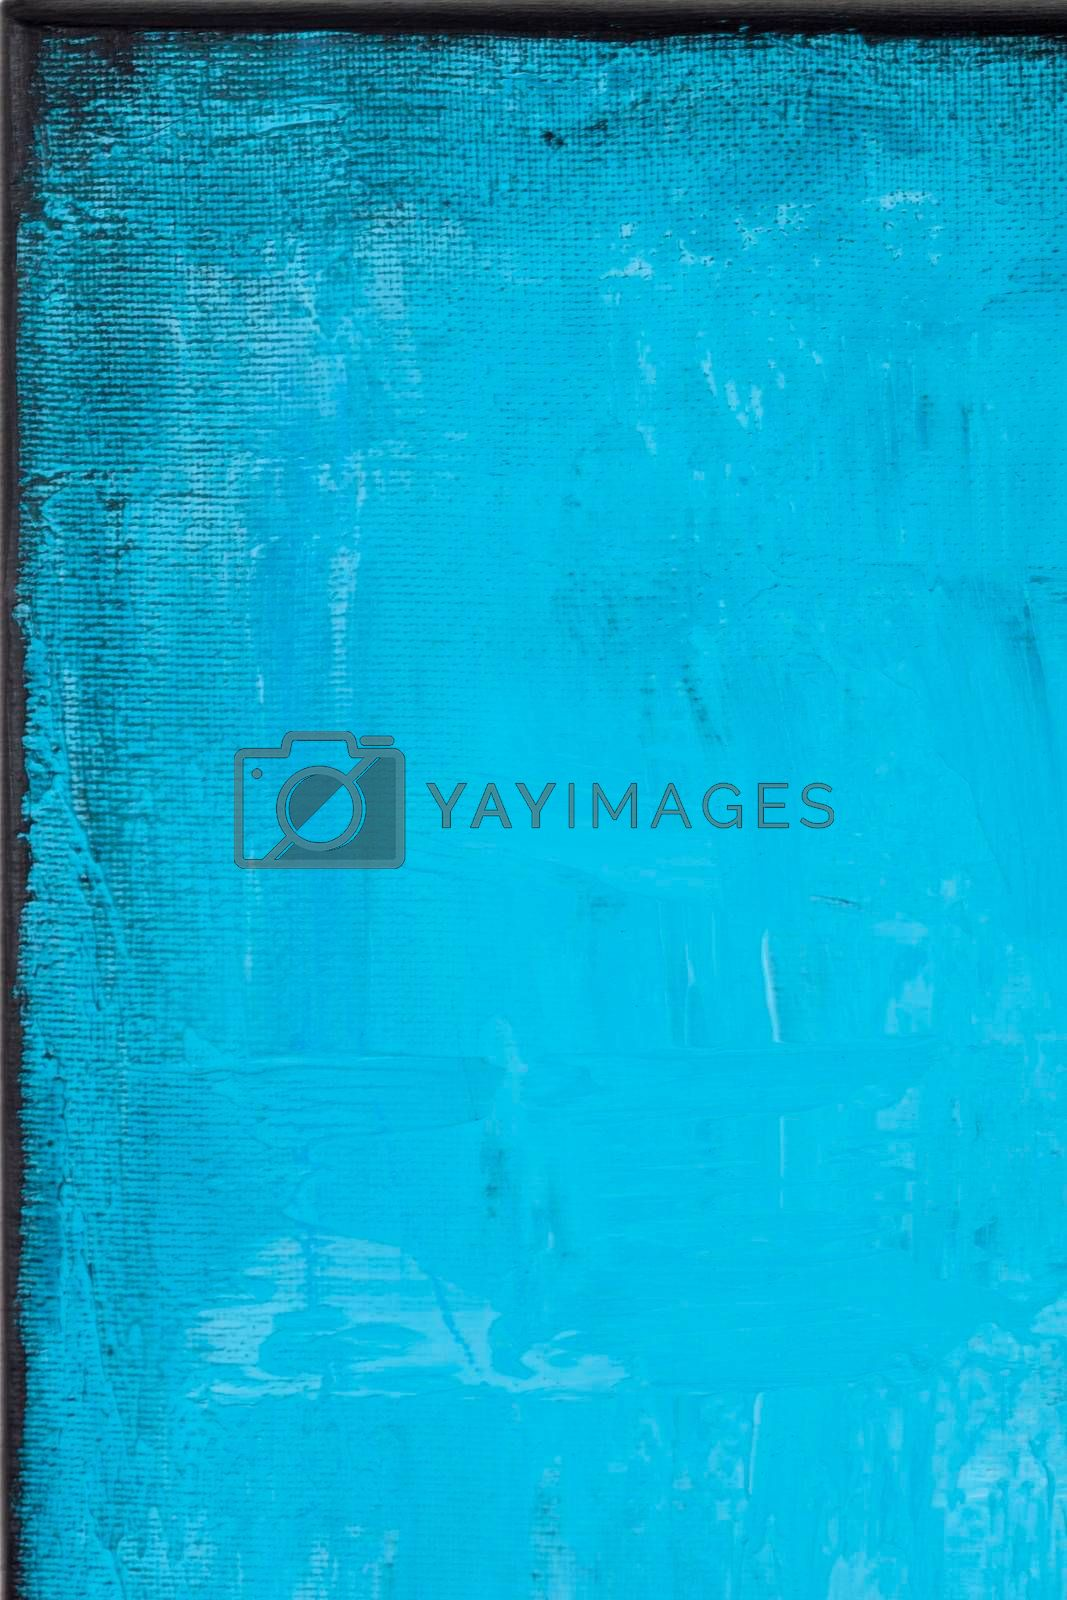 Blue grunge colored texture background. Decorative painting.